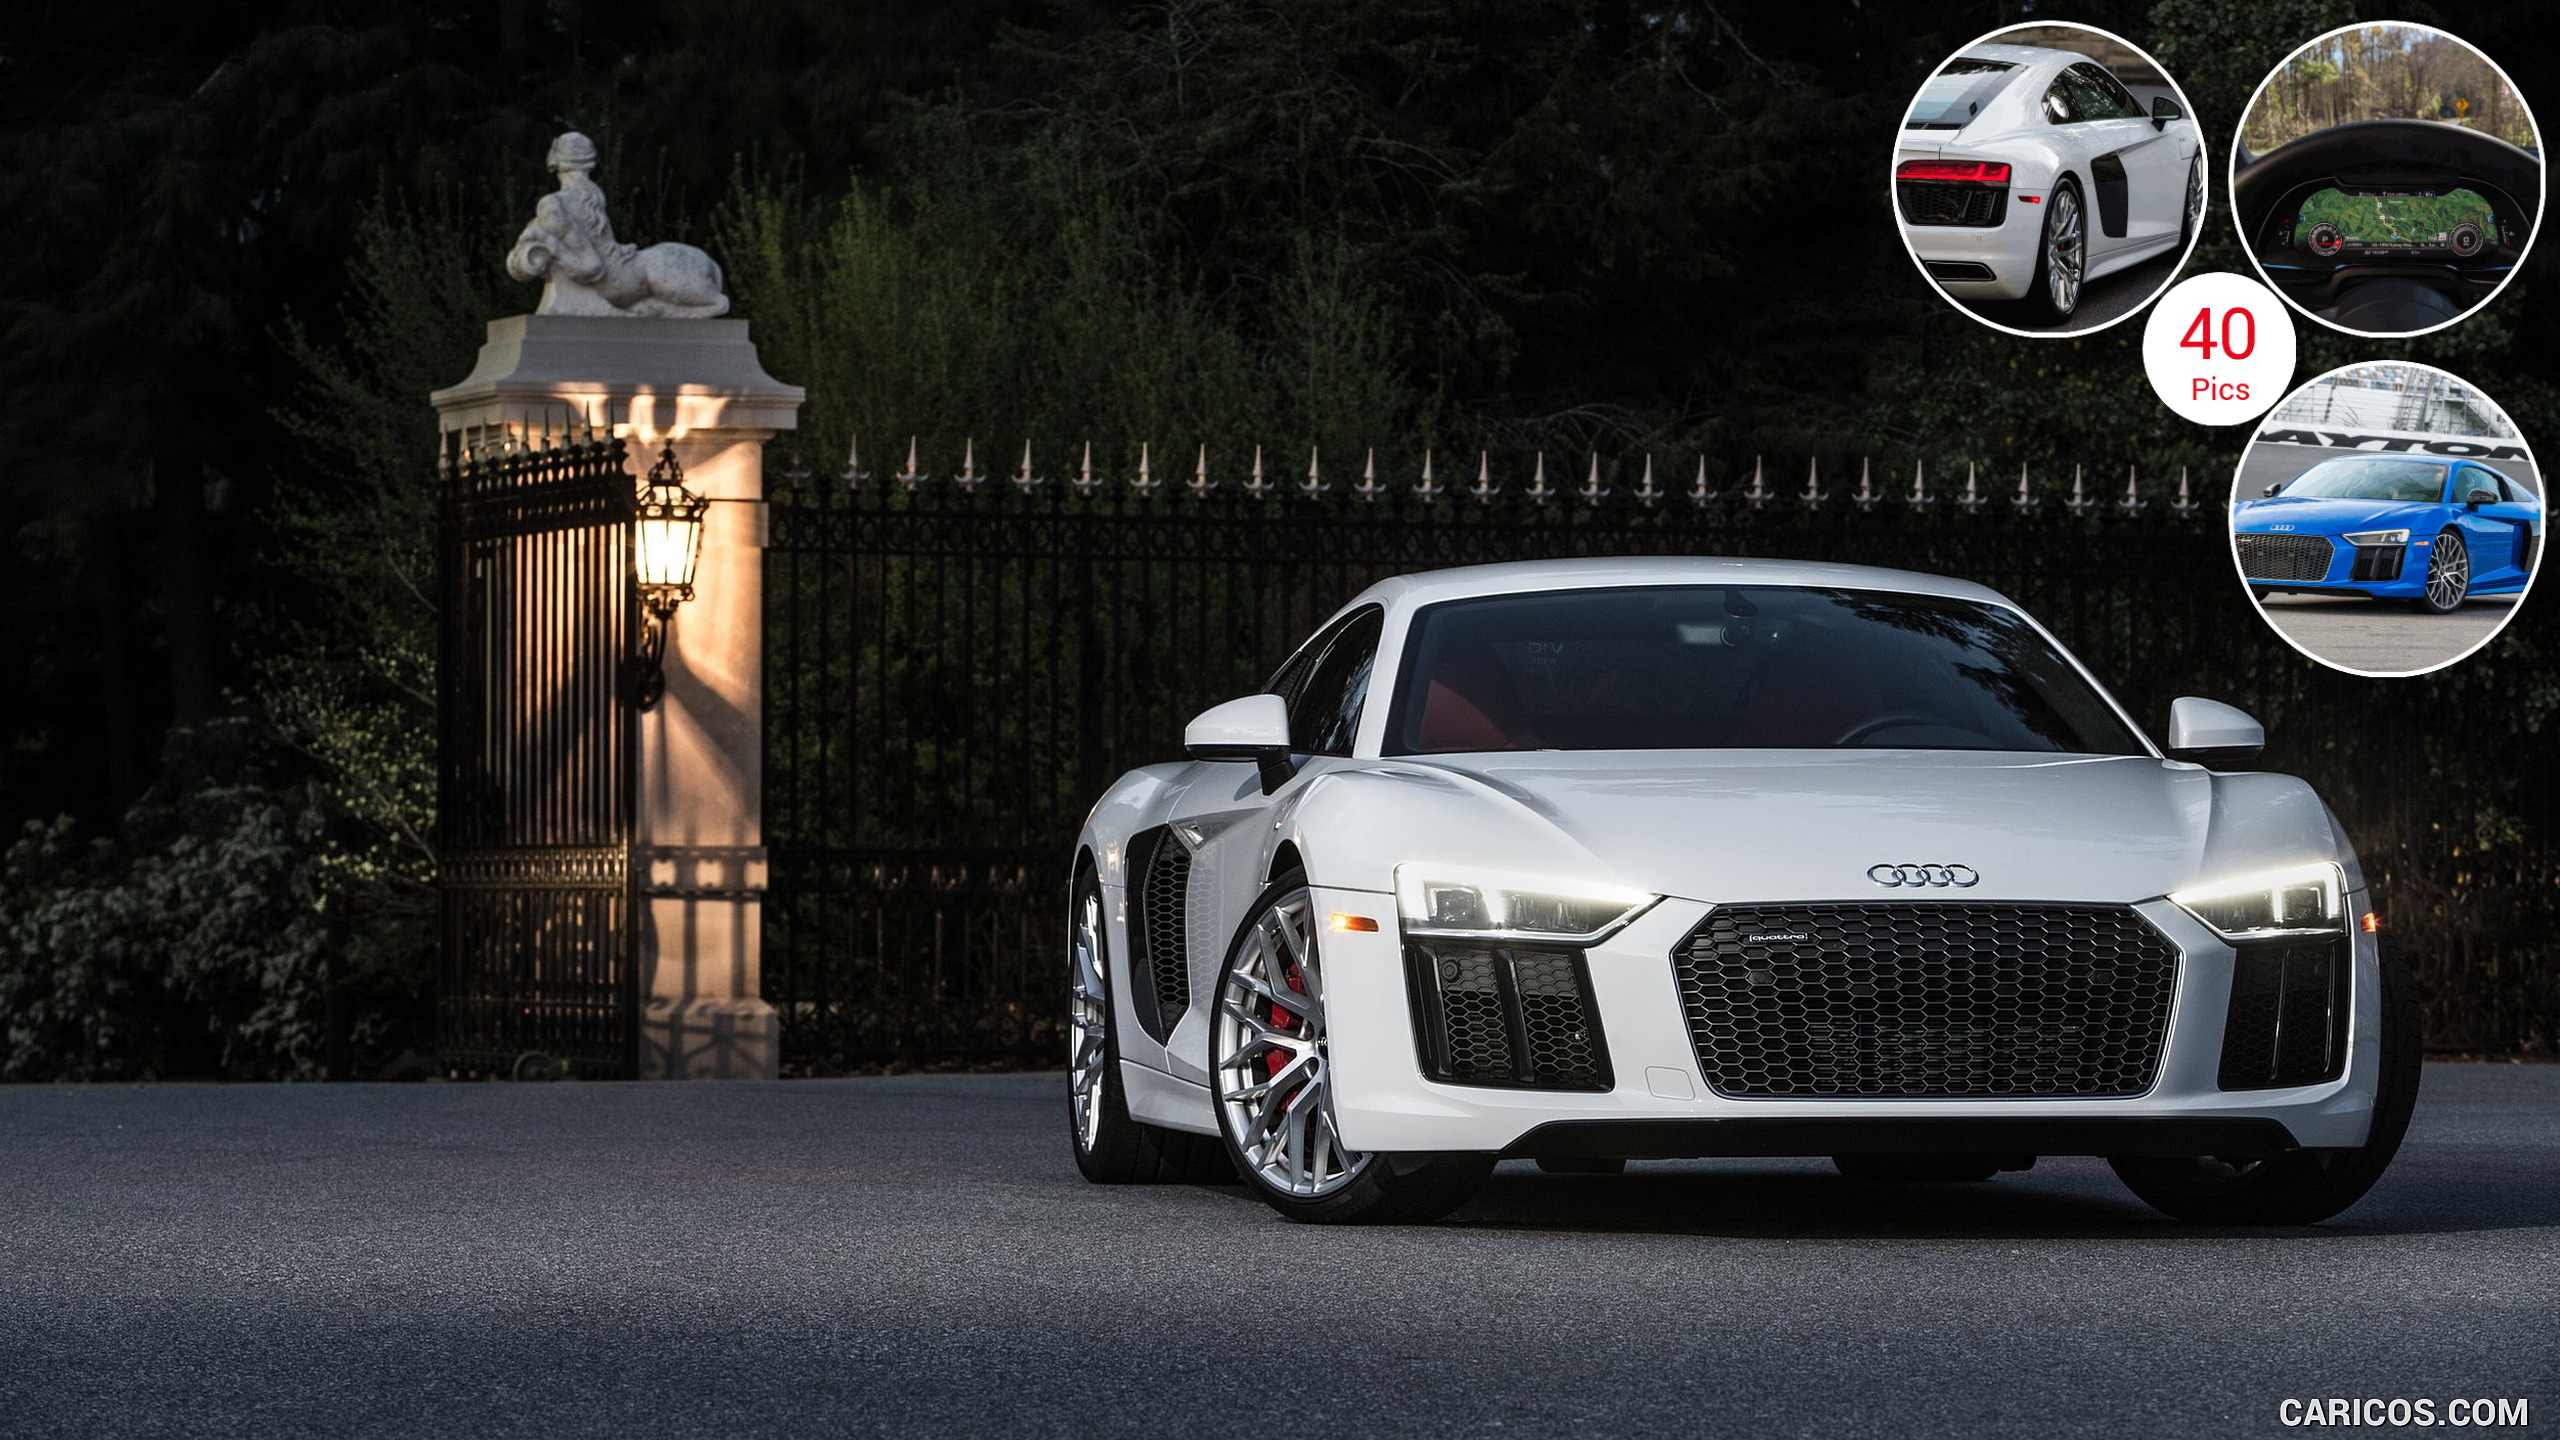 Audi R8 White Wallpapers Top Free Audi R8 White Backgrounds Wallpaperaccess